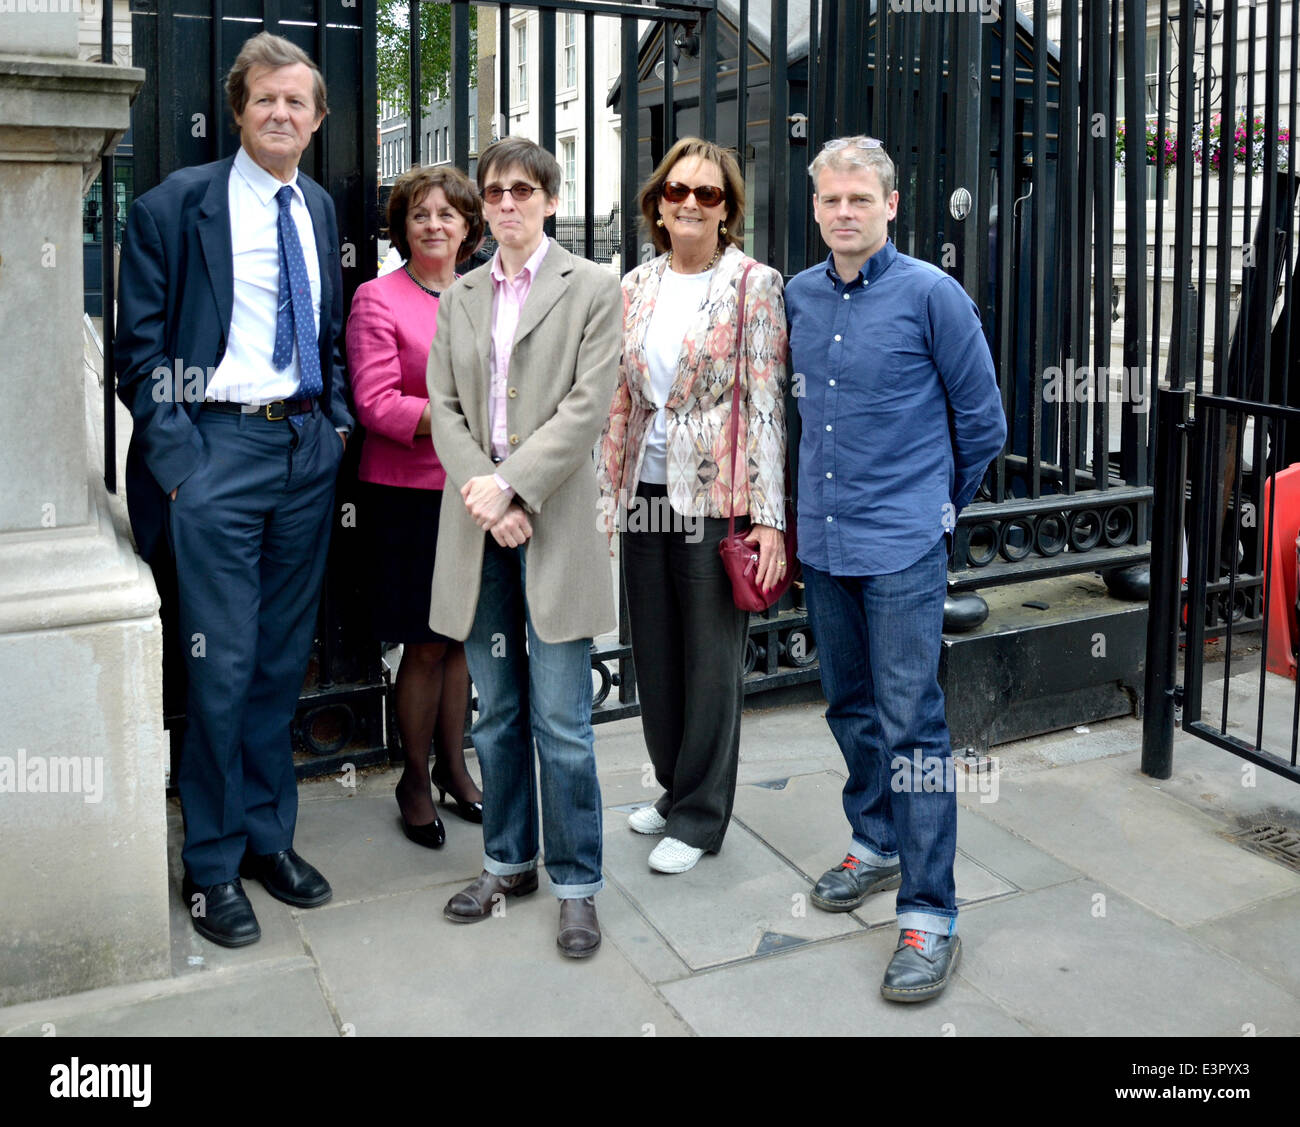 Sir David Hare, Frances Crook, A L Kennedy, Rachel Billington and Mark Haddon waiting to enter Downing Street to - Stock Image